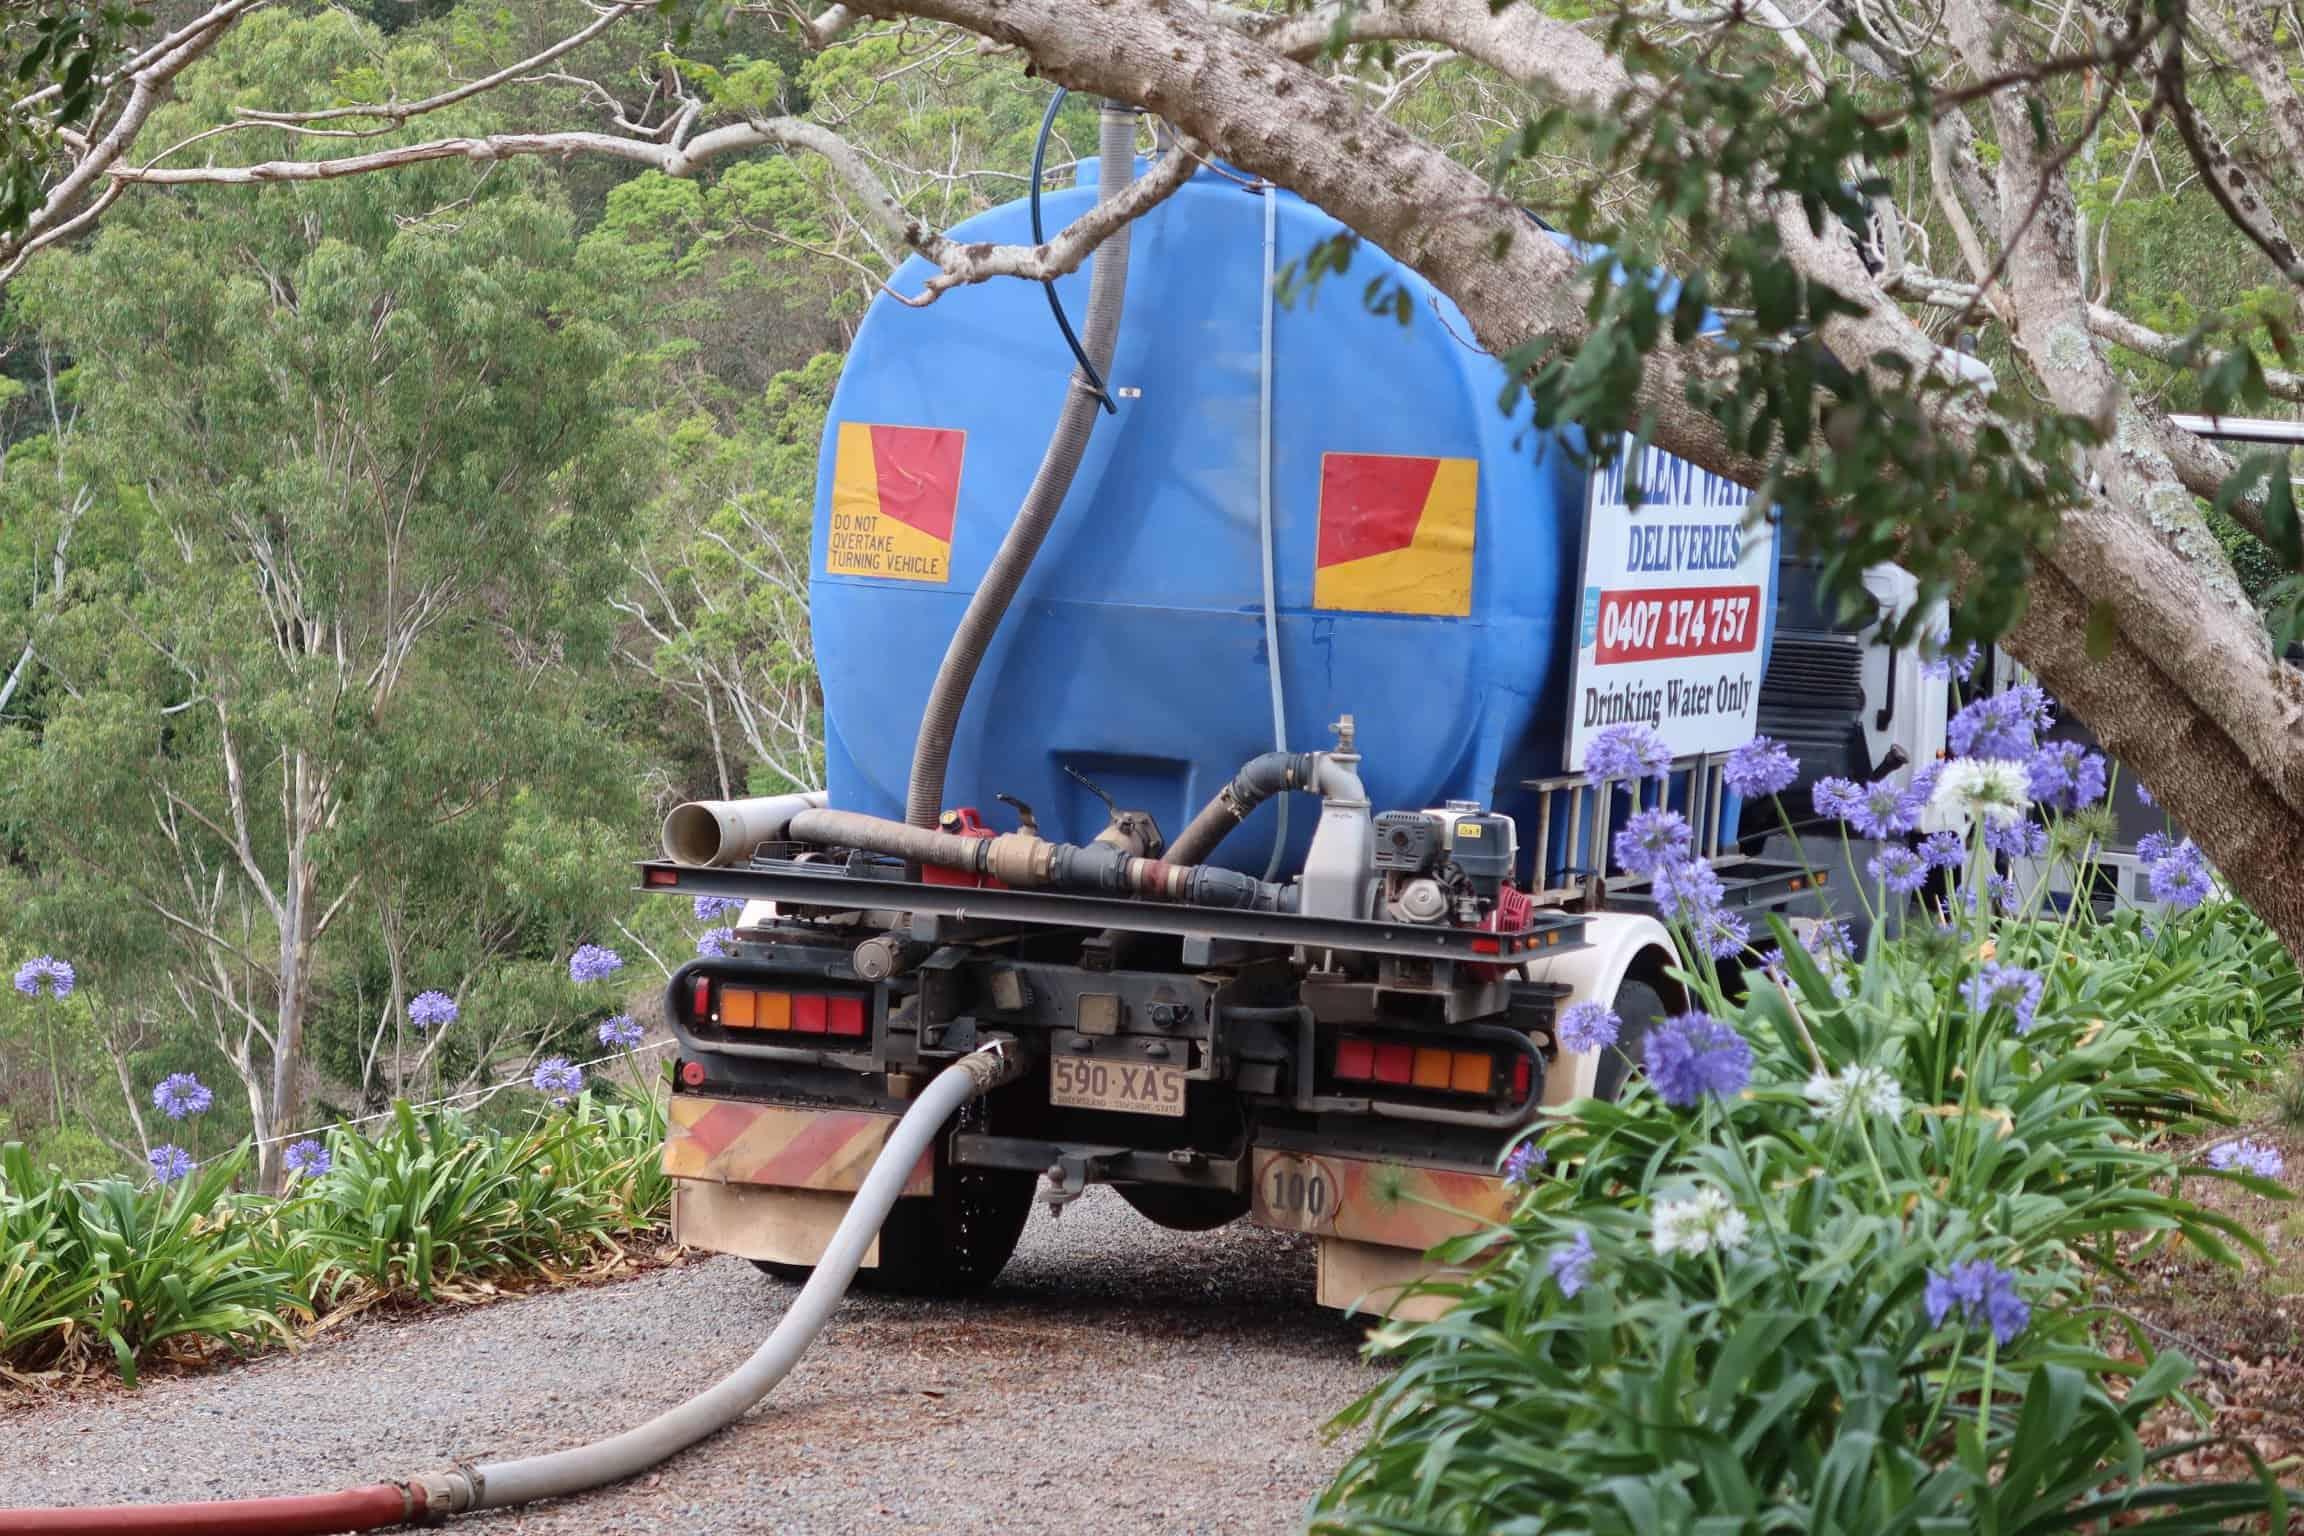 authentic thai beef salad water truck in the driveway with hose